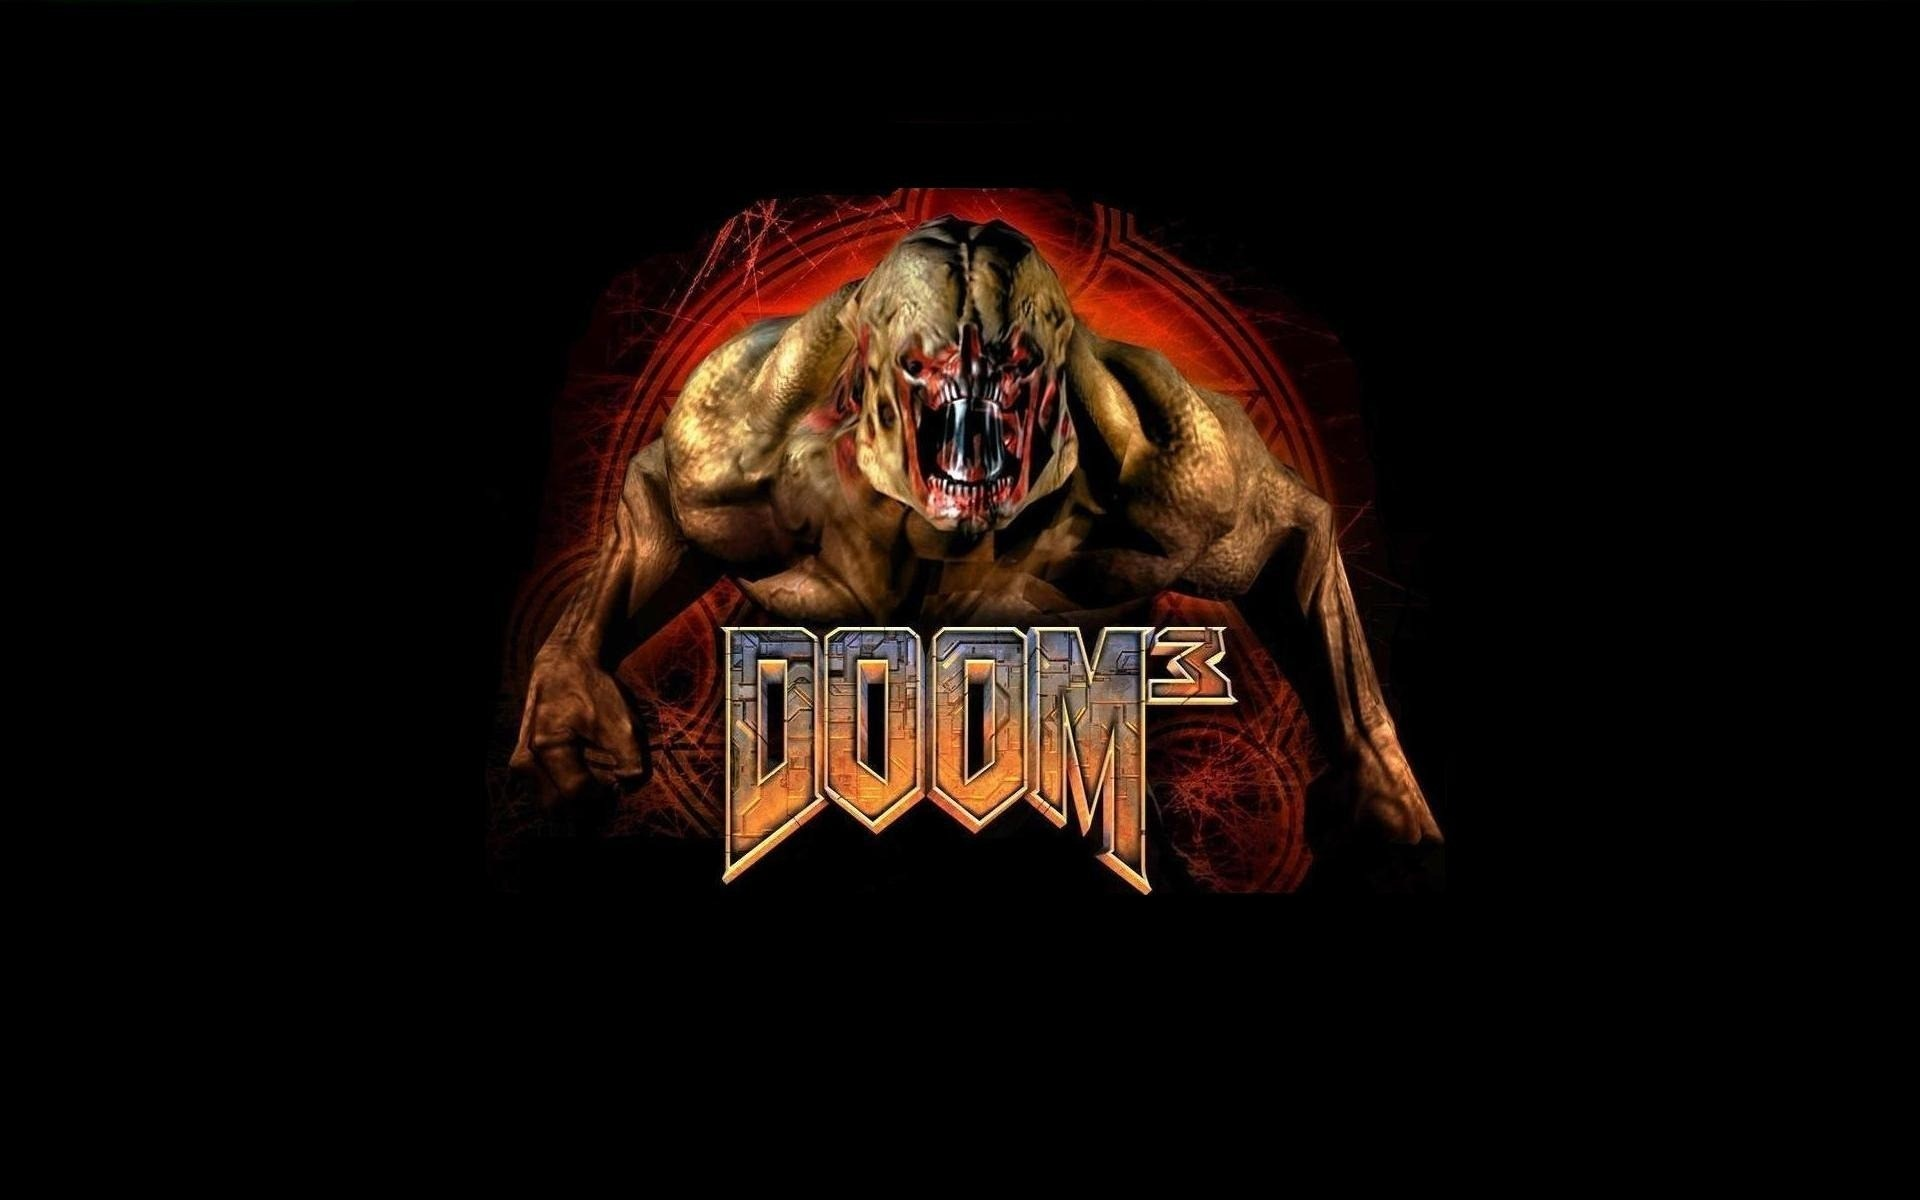 Doom Game Wallpaper 70 Images: Doom Wallpapers Wallpapers High Quality